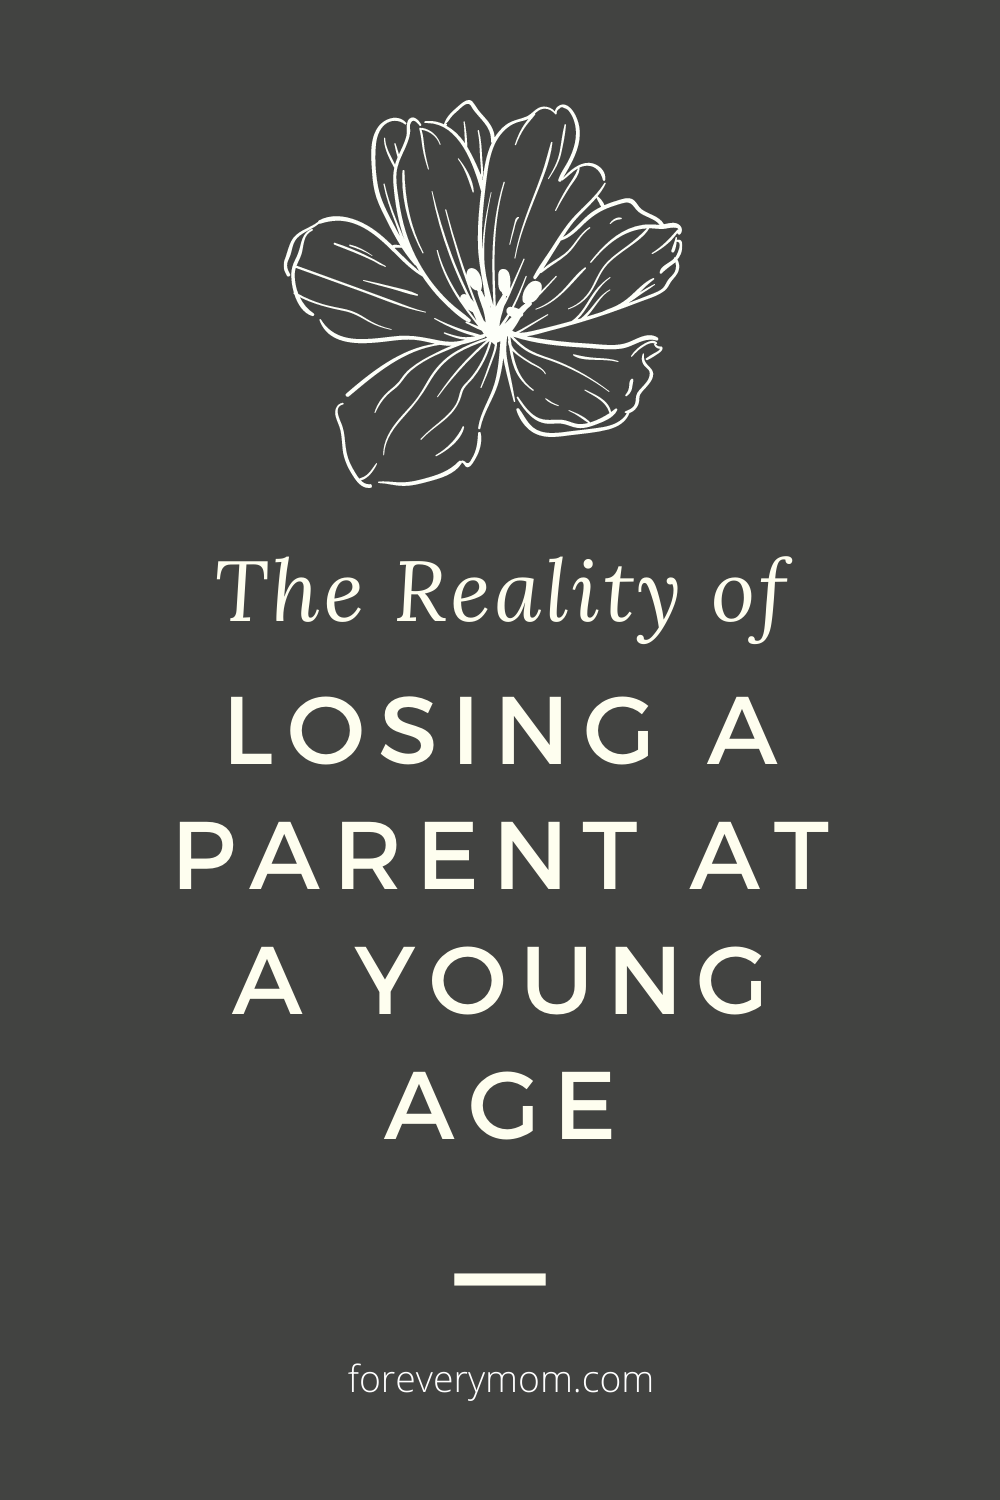 losing a parent at a young age